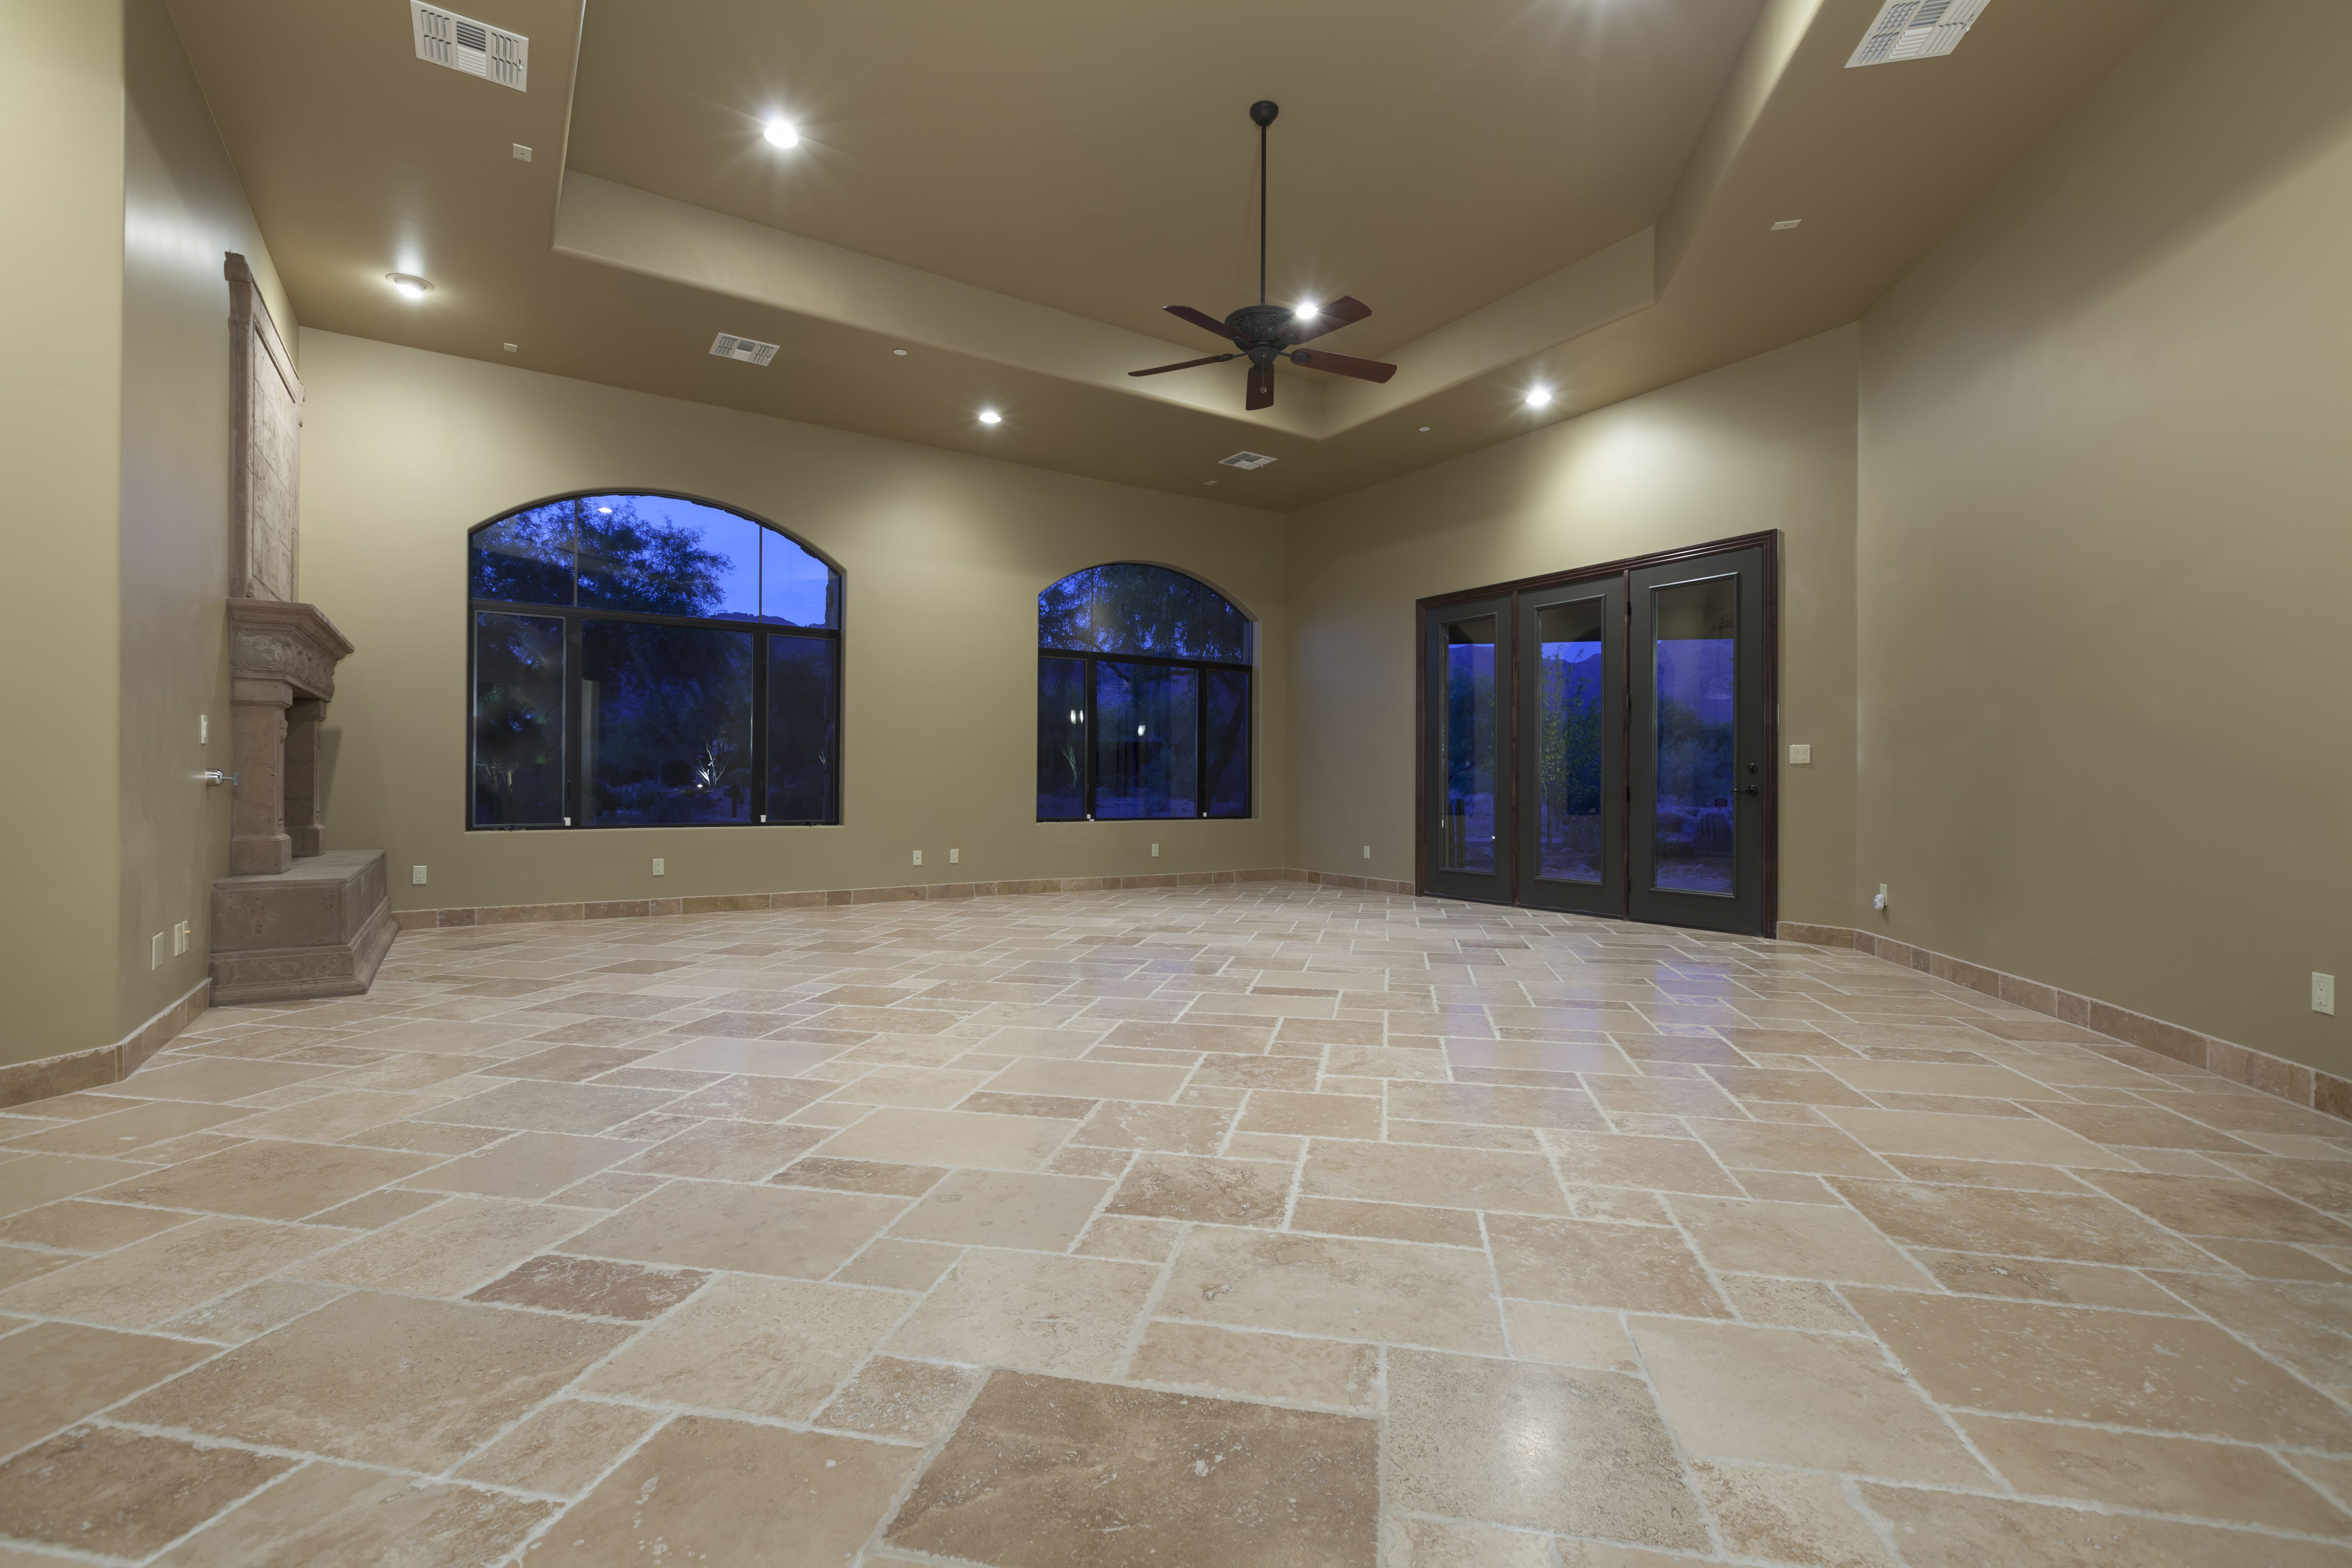 How to clean and care for rubber floor tiles heres a how to guide to cleaning travertine flooring dailygadgetfo Gallery